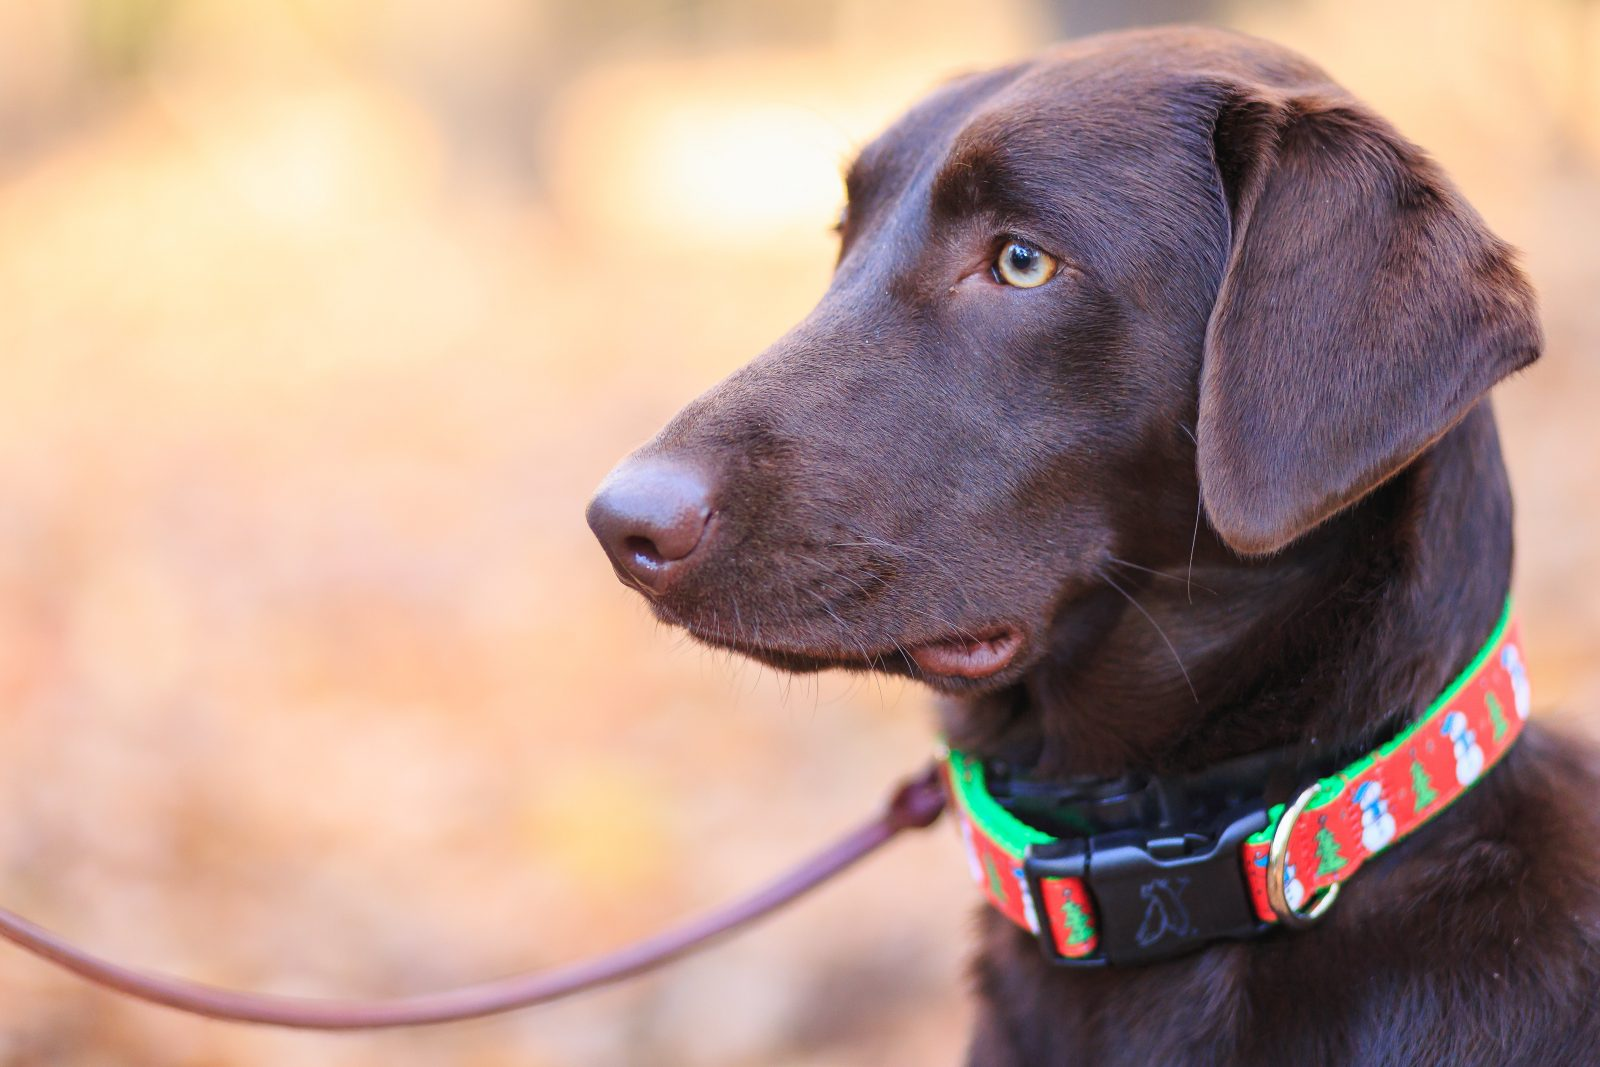 a Labrador dog wearing a brightly colored collar to track its location